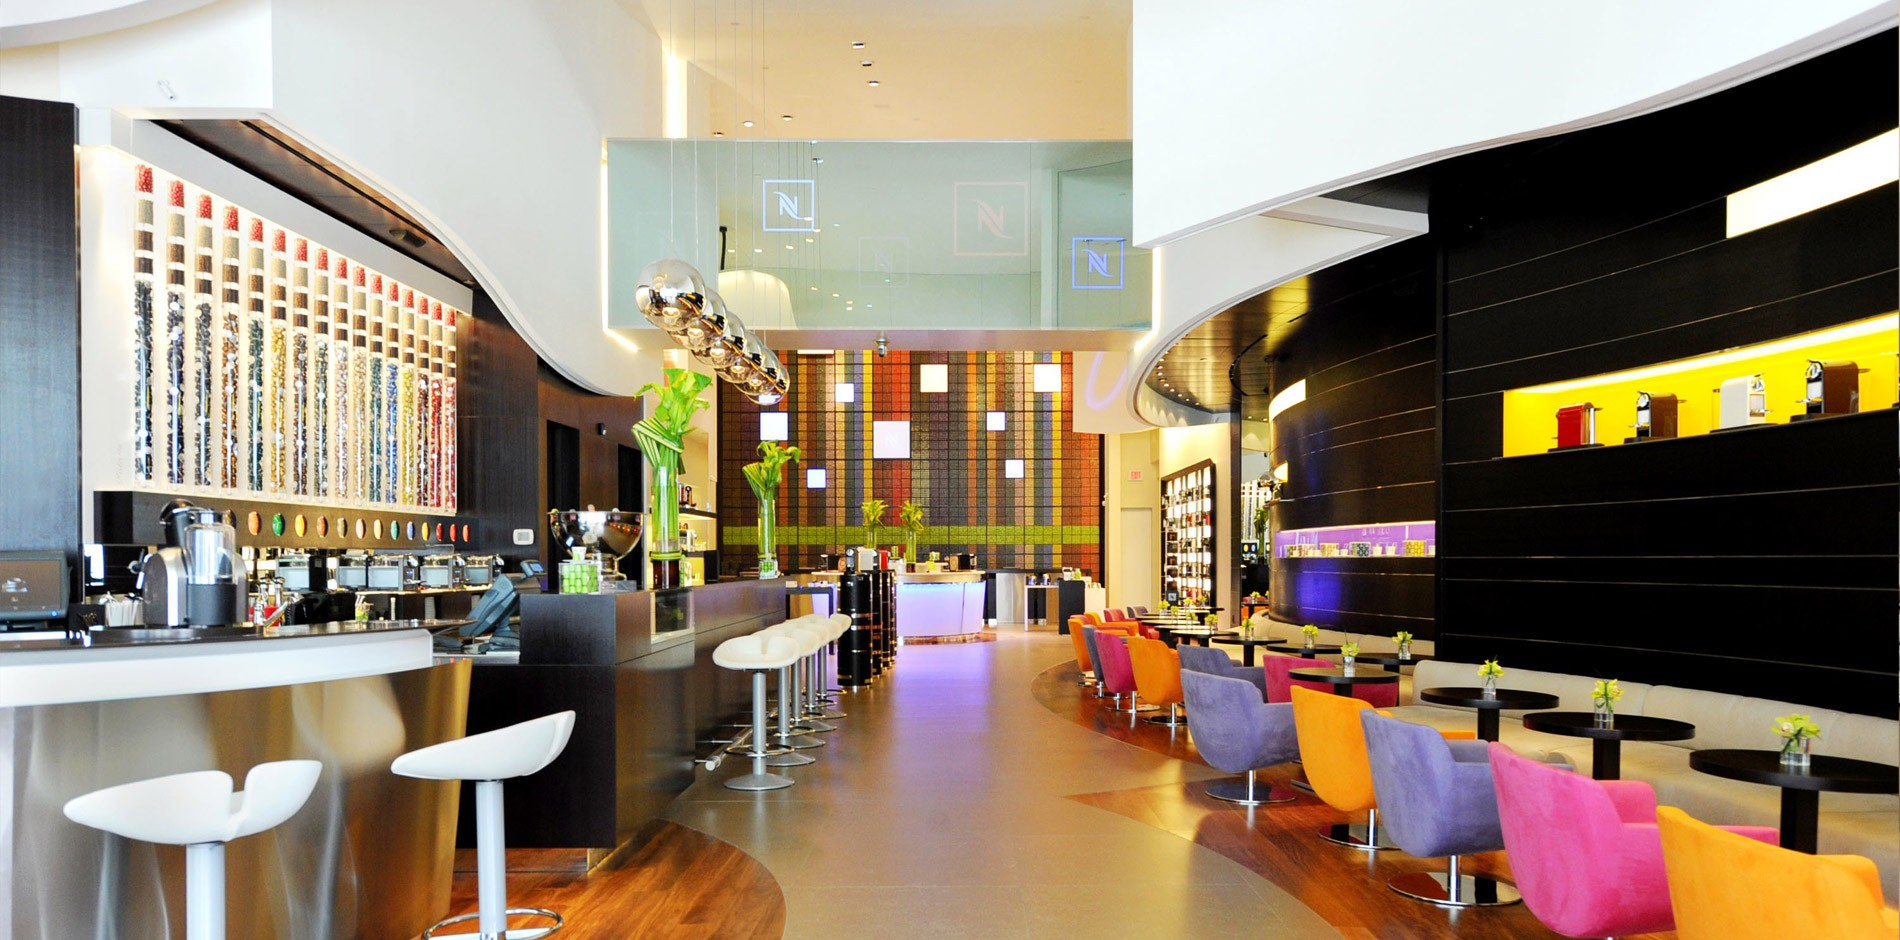 Nespresso Retail Store In Miami Fl Renovation Amp Fit Out